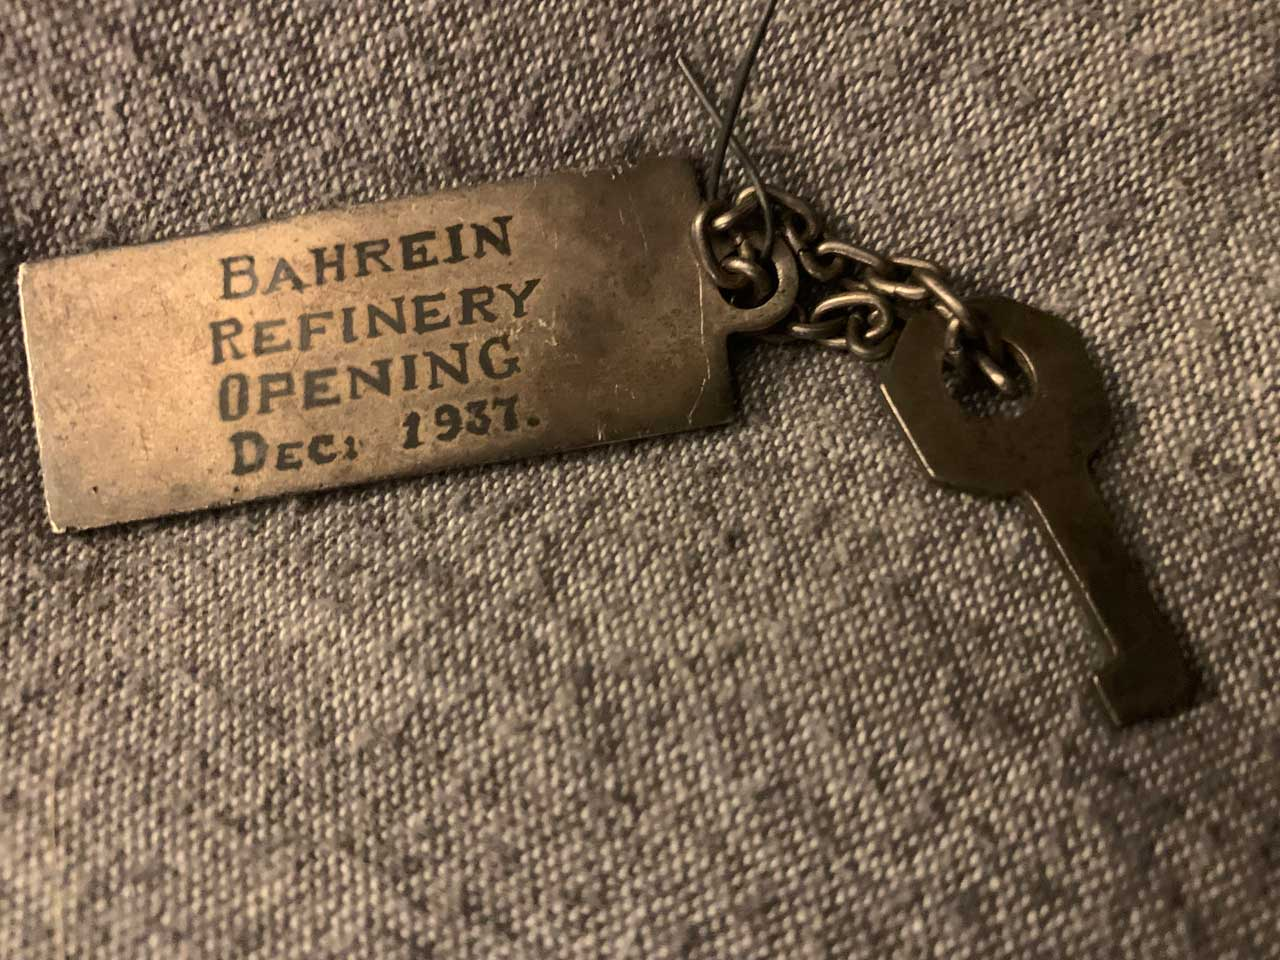 This key is from the Bahrain refinery opening.